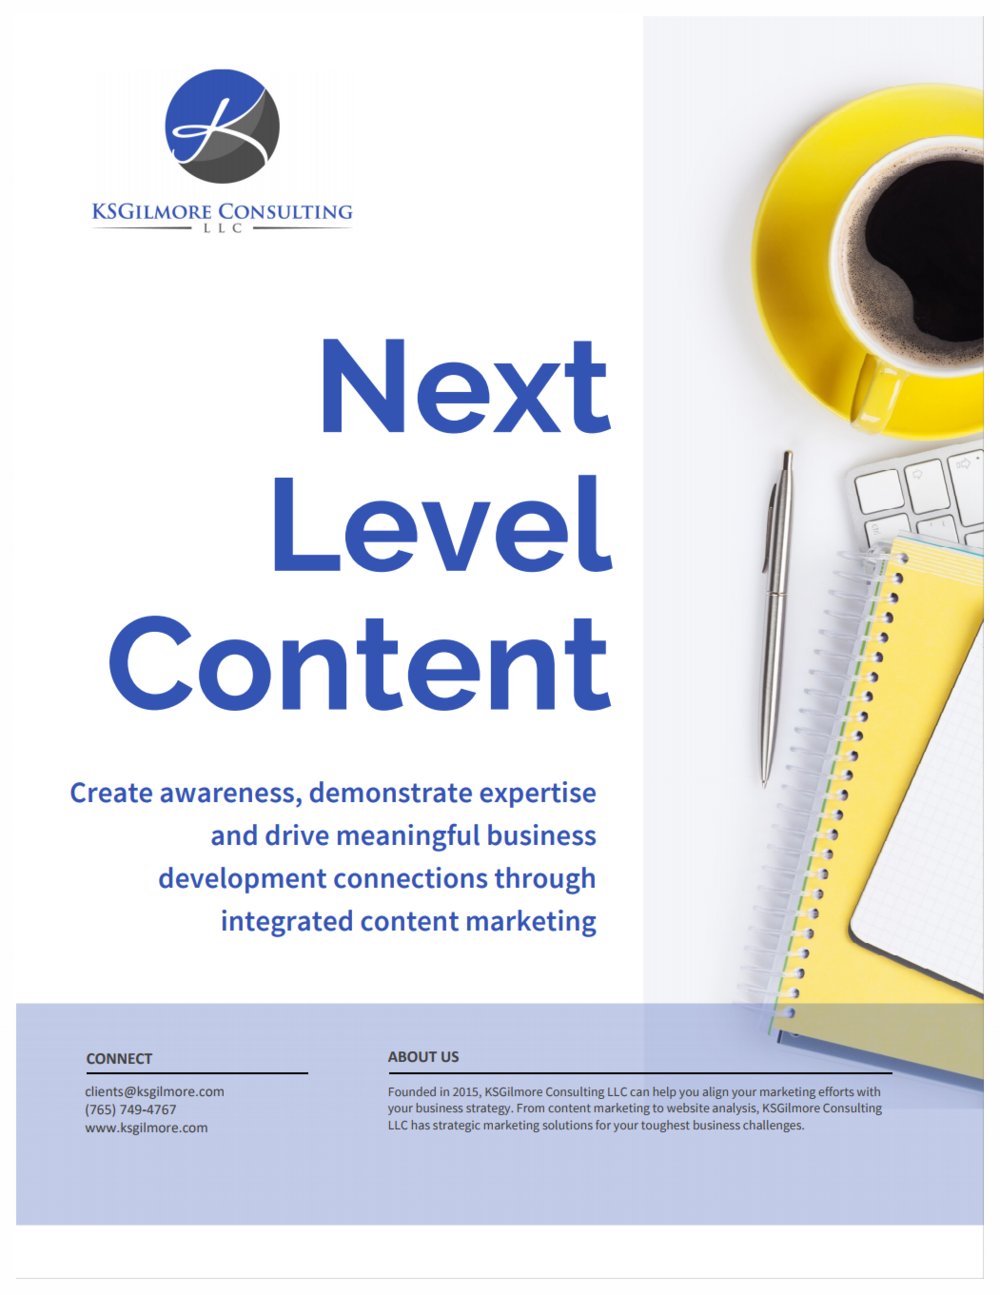 KSGilmore-Consulting-Guide-Next-Level-Content.PNG